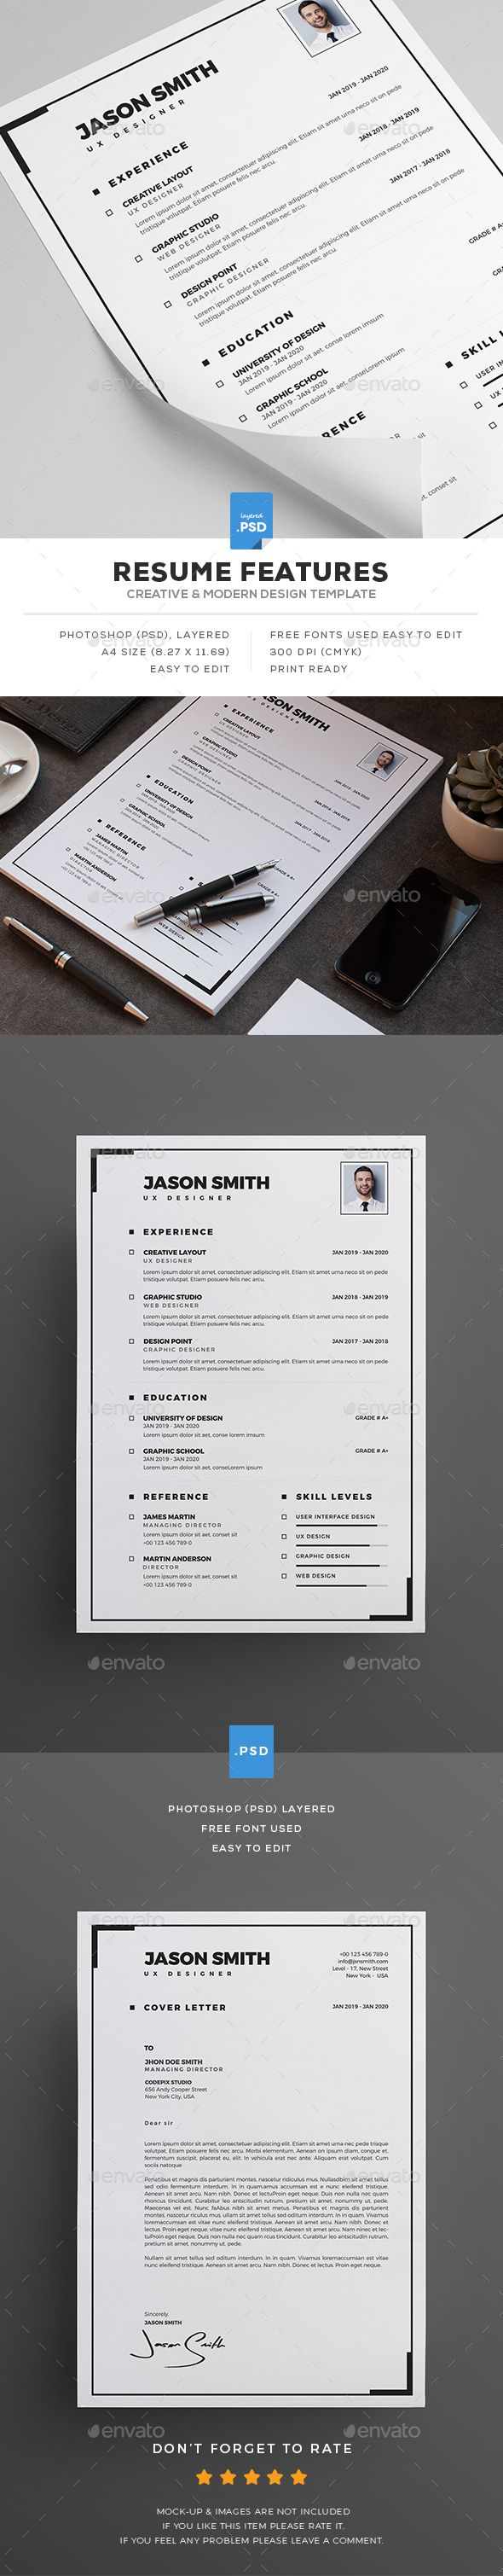 Chronological Resume Samples%0A Clean  Resume  Resumes  Stationery Download here  https   graphicriver